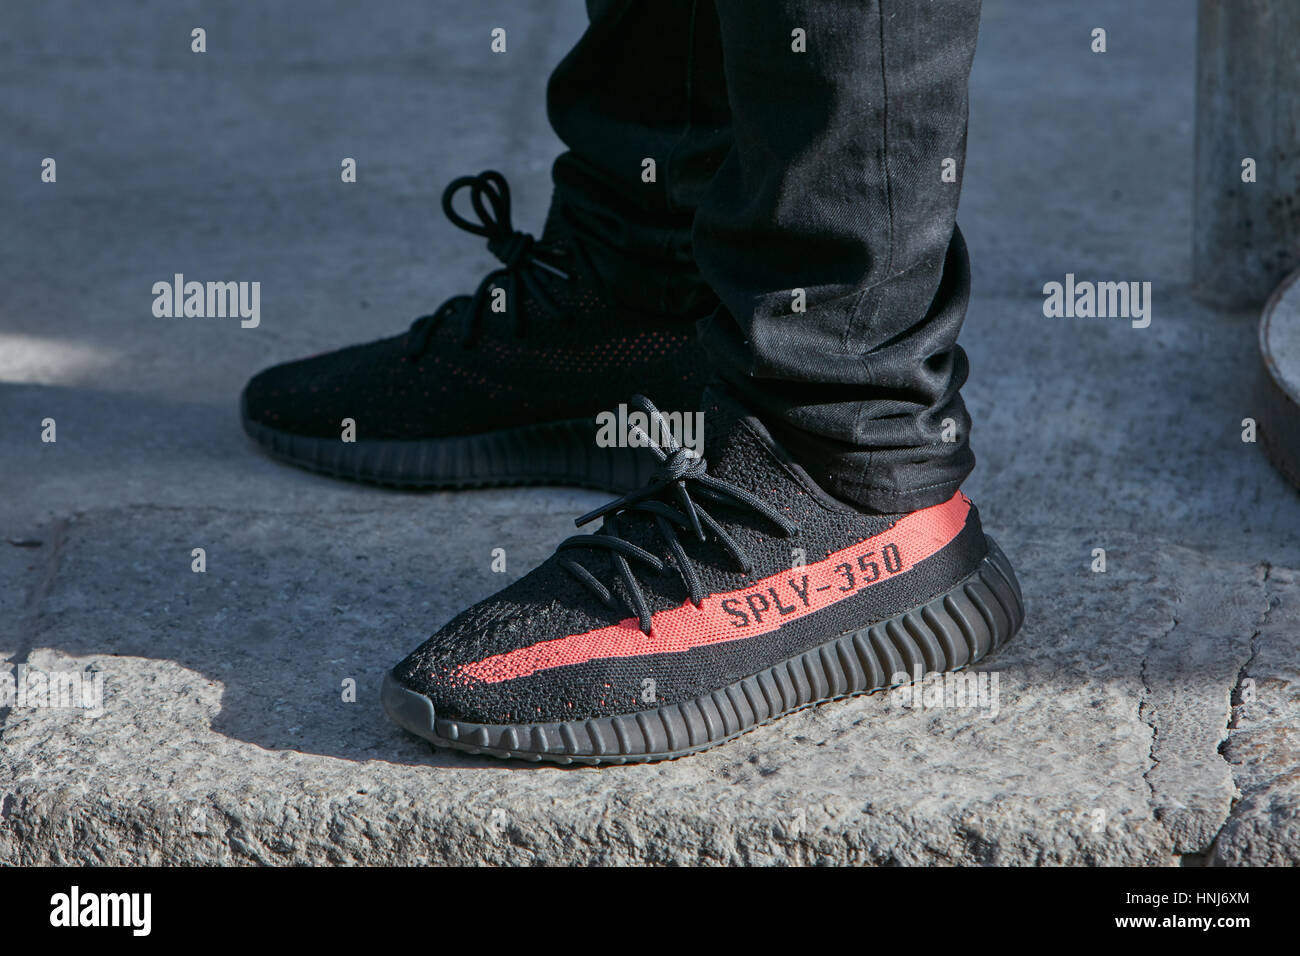 rote yeezy schuhe